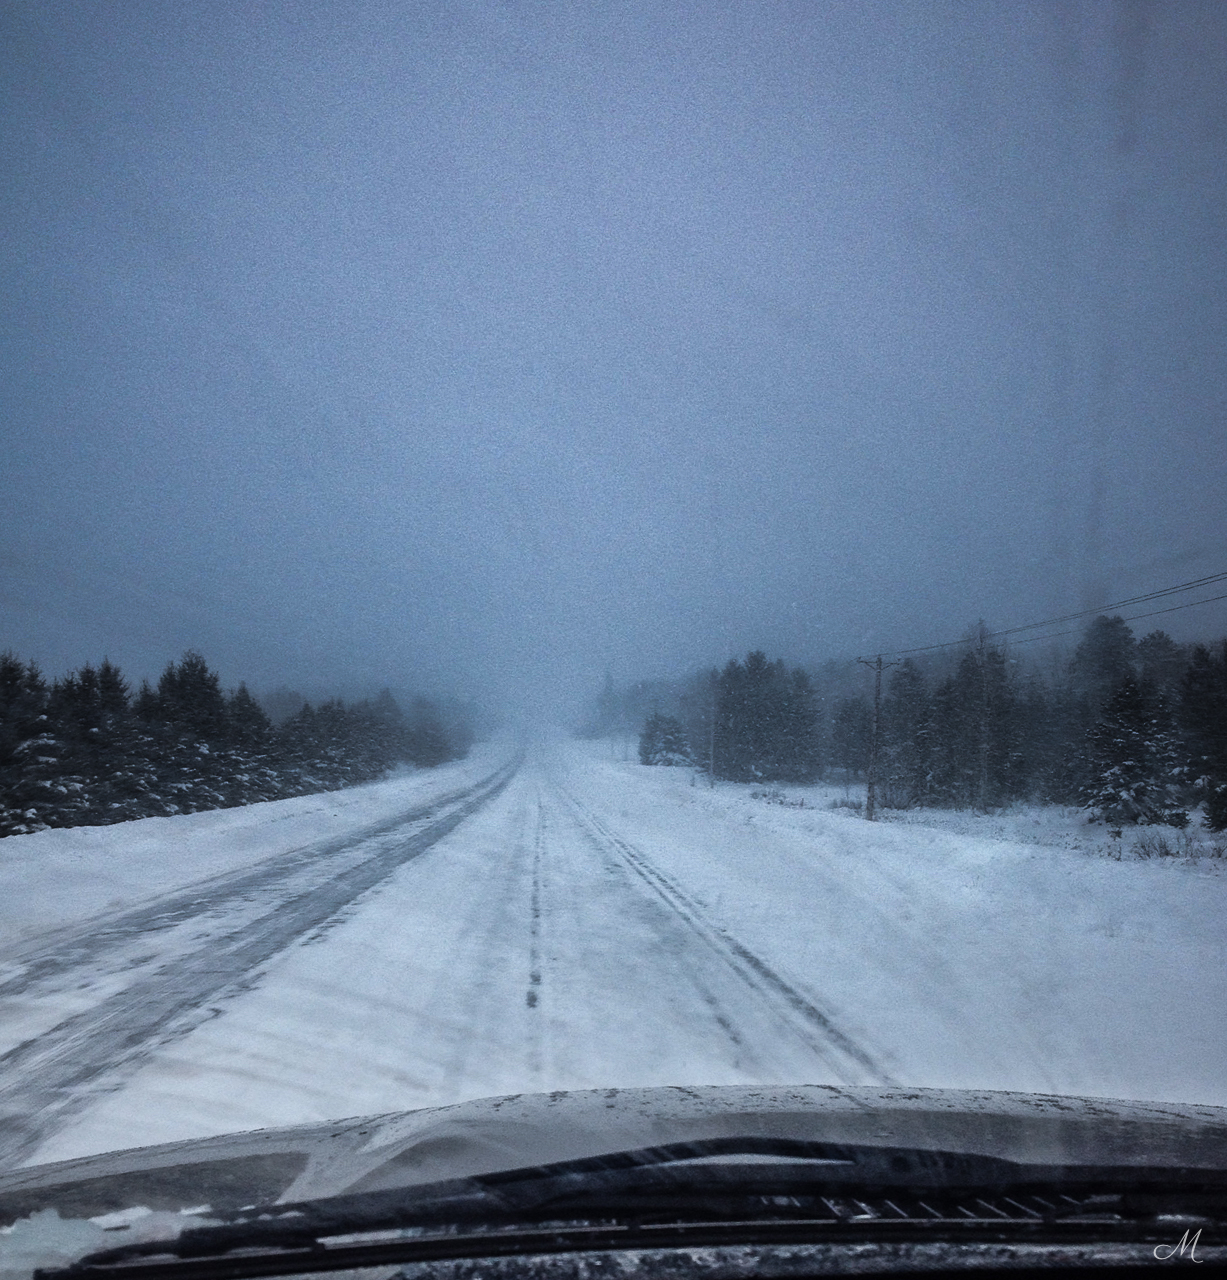 There is no getting around driving in weather like this here.